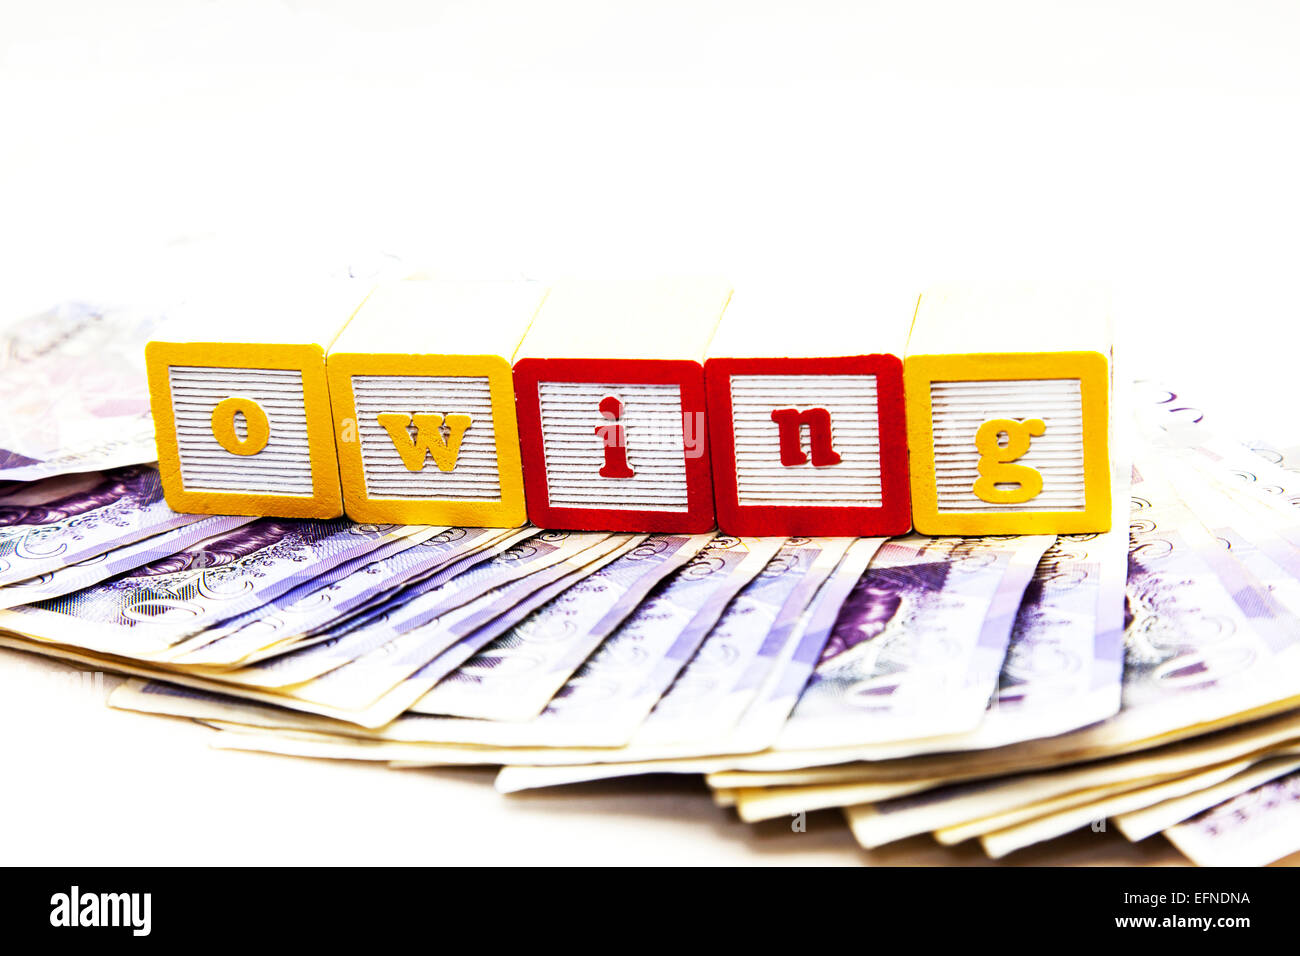 Owing money lender debt debts loan loans pounds cash shark payment pay cut out copy space white background - Stock Image